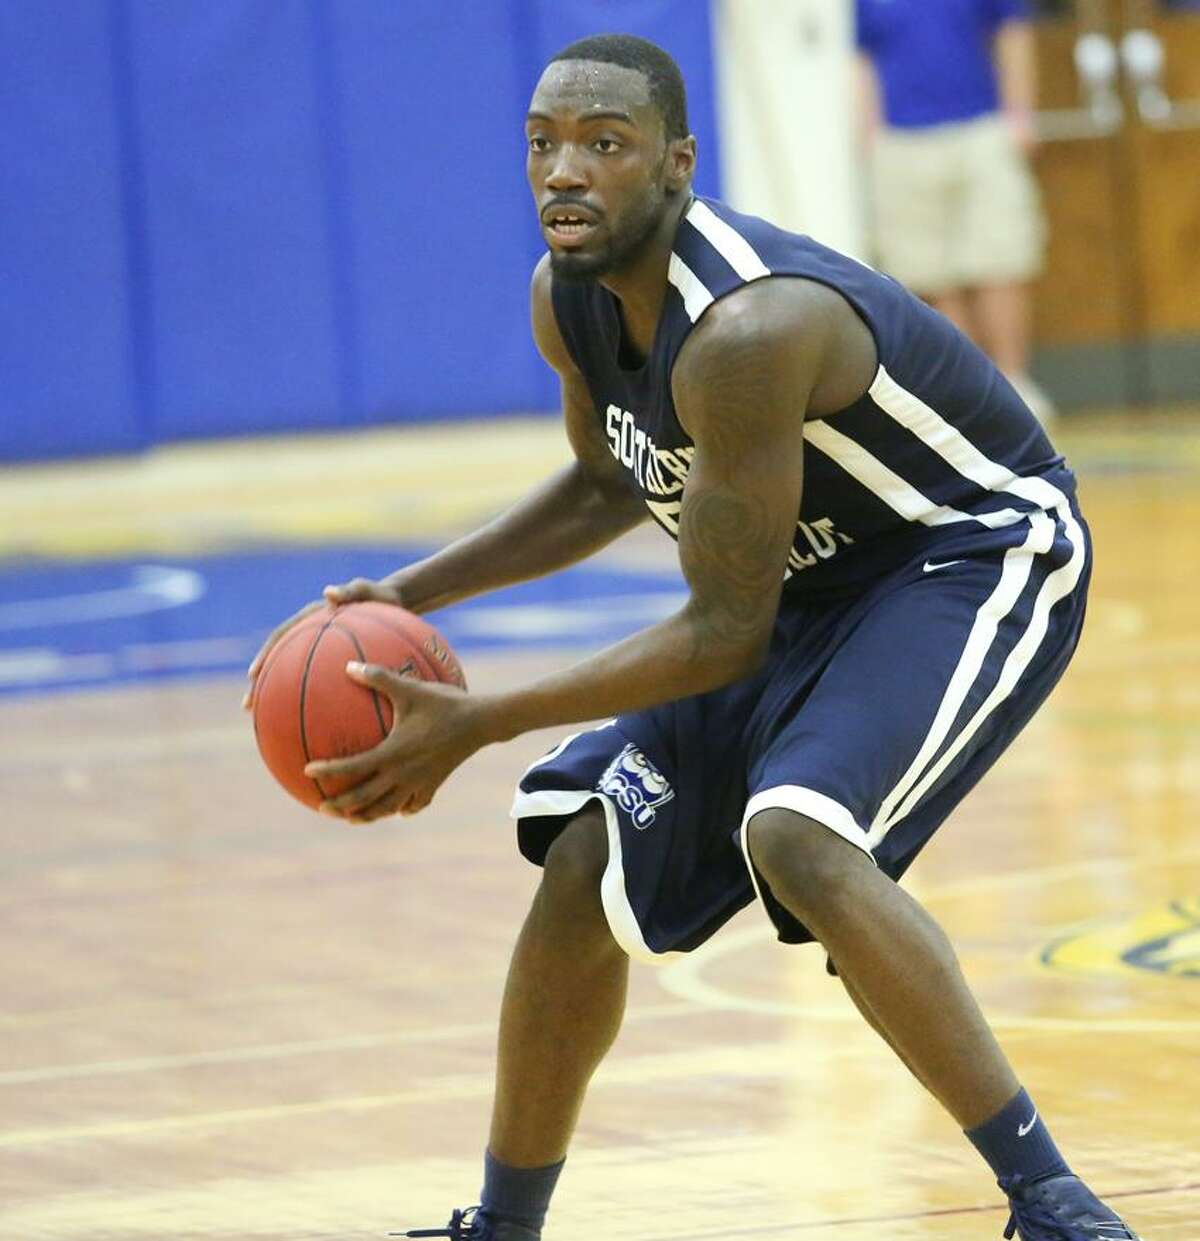 Trevon Hamlet had 14 points and seven rebounds in SCSU's win over Merrimack Saturday. (Submitted photo)